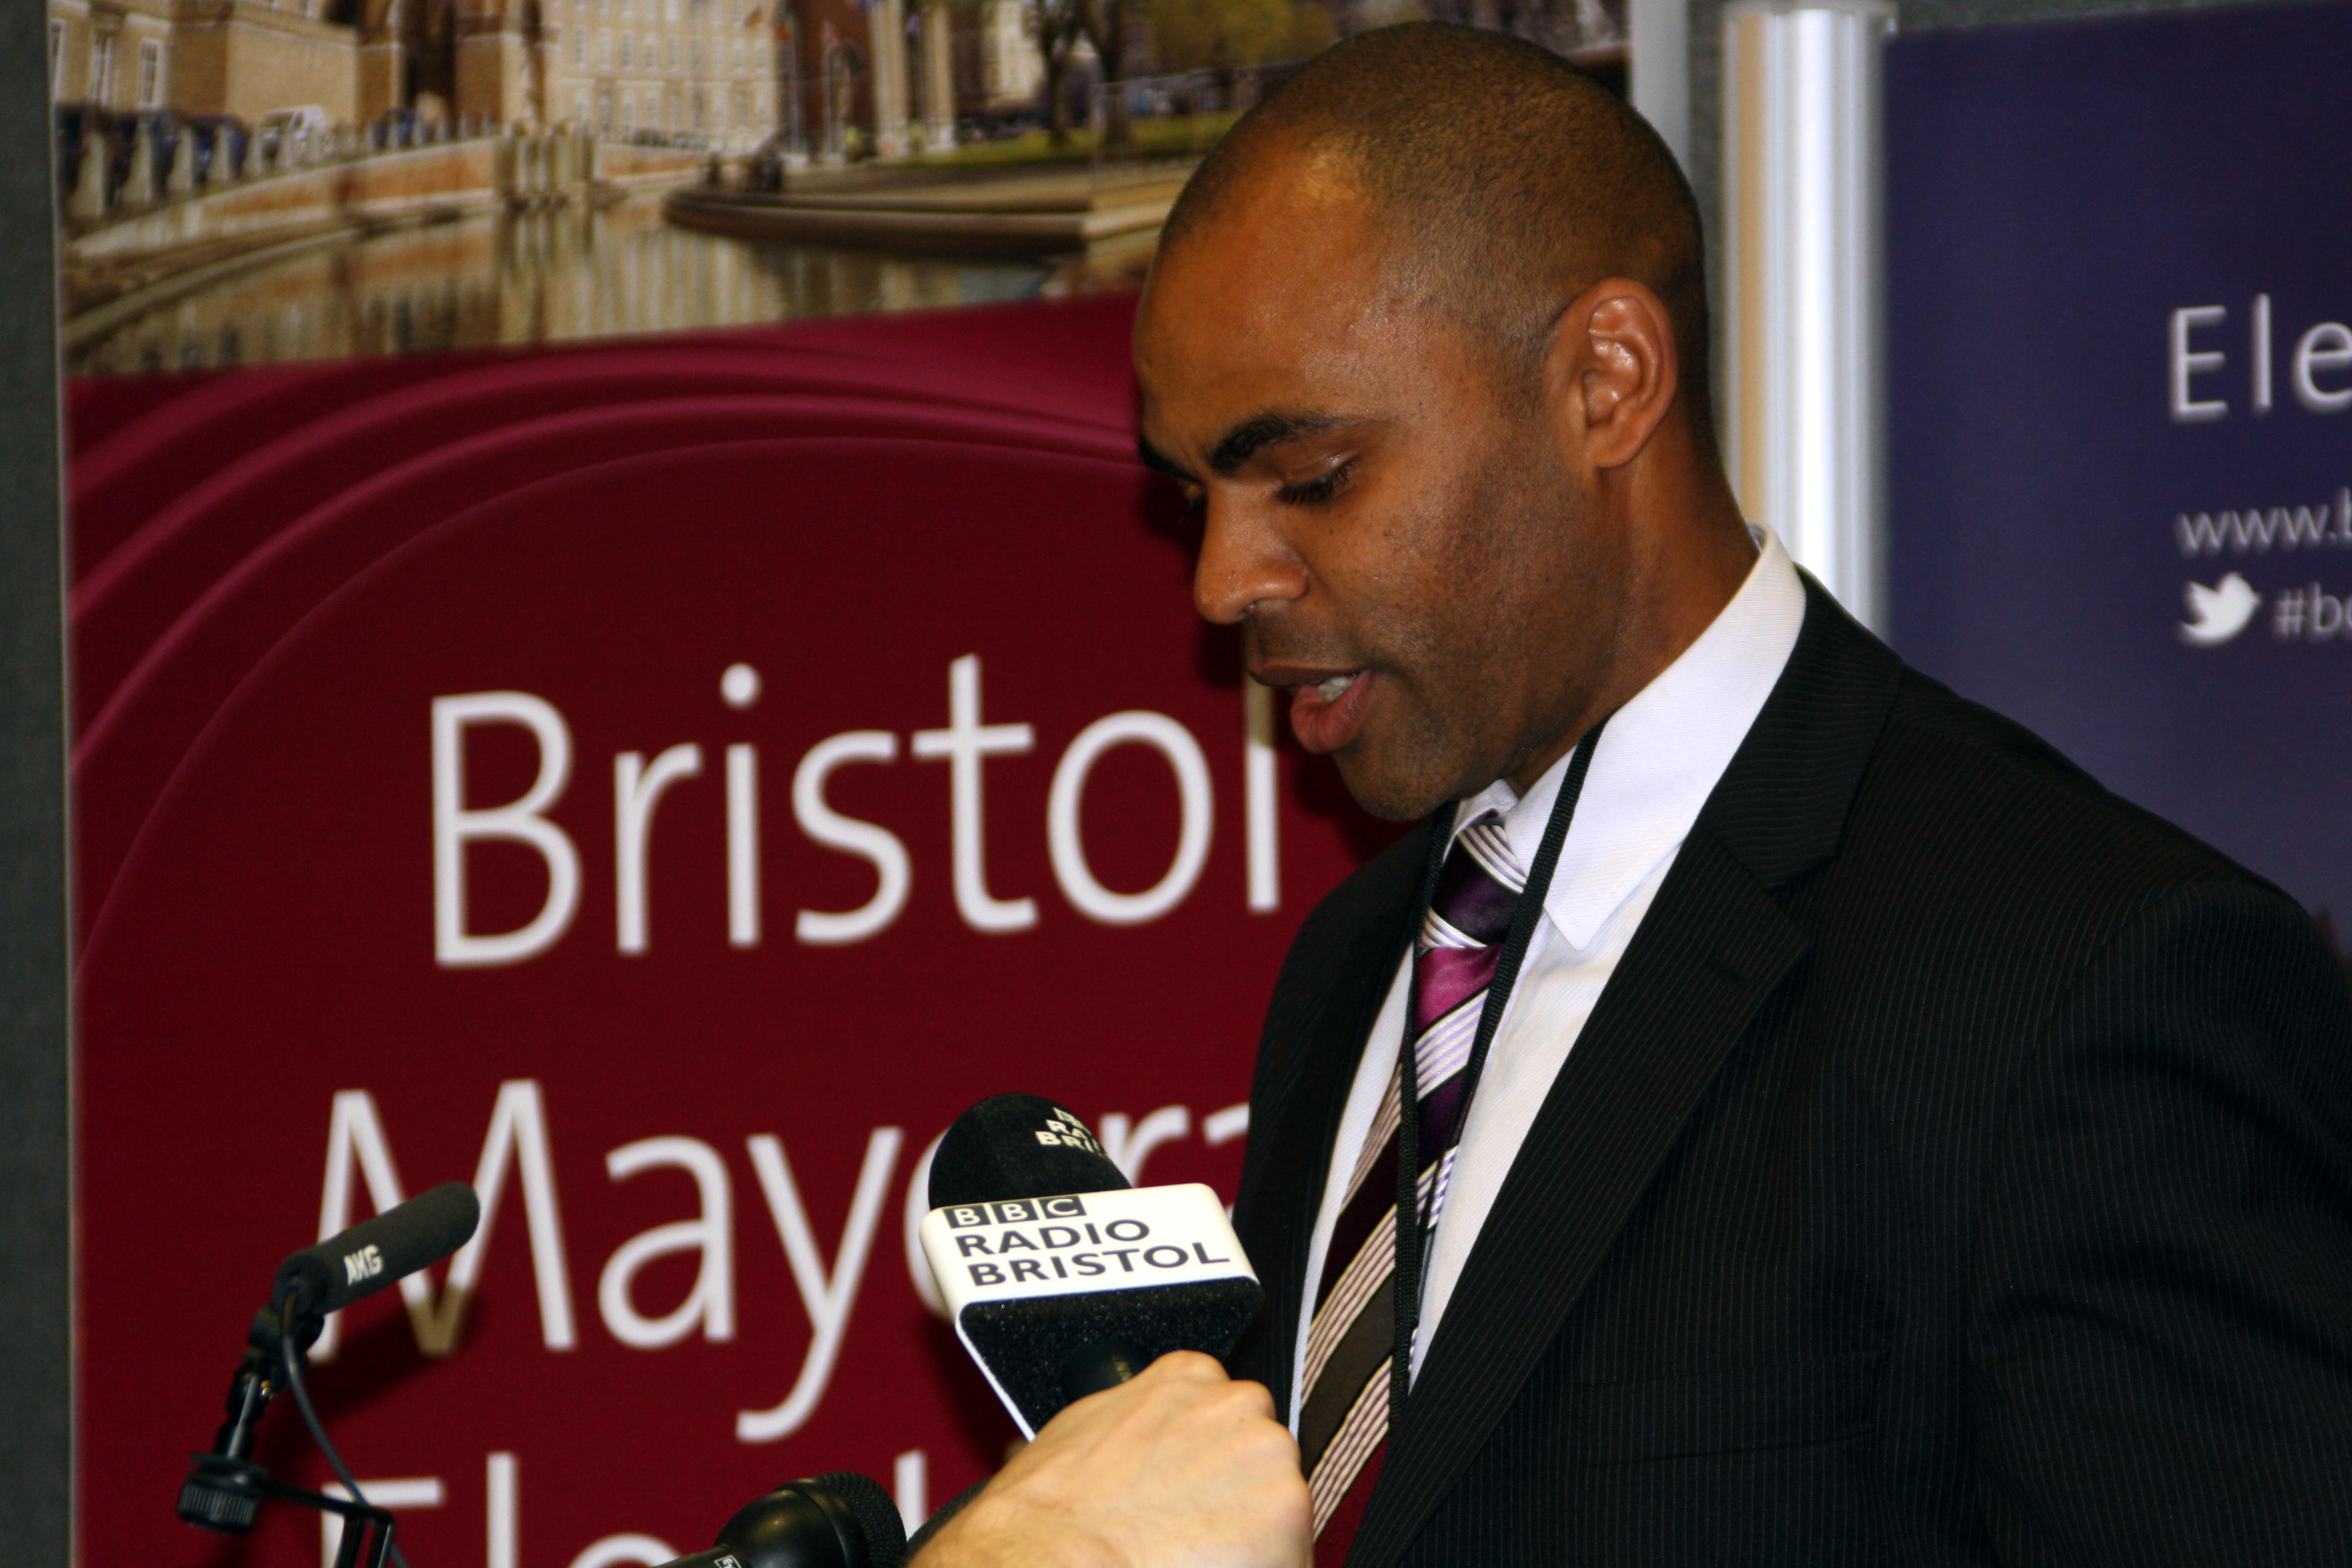 Labour's defeated Bristol Mayor candidate Marvin Rees listens as election winner - Independent George Ferguson - addresses his supporters, after winning the Bristol Mayoral election, at the election count held at the University of the West of England in Bristol.